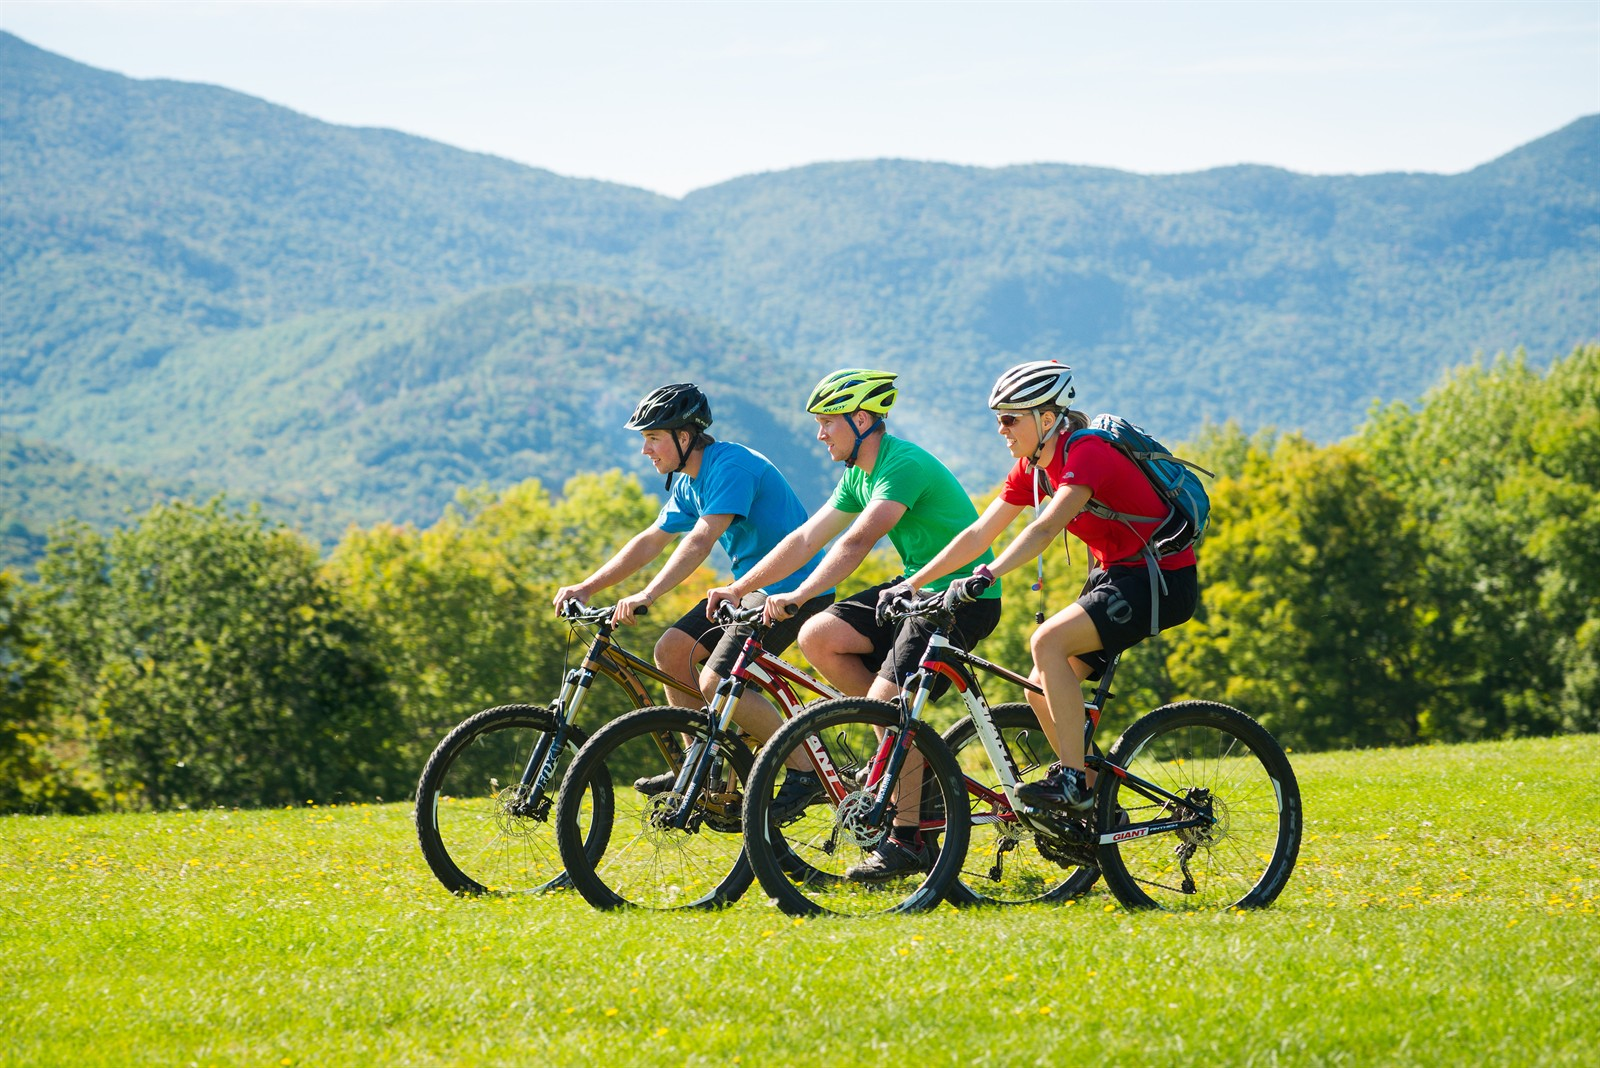 Mountain Biking at Trapp Family Lodge